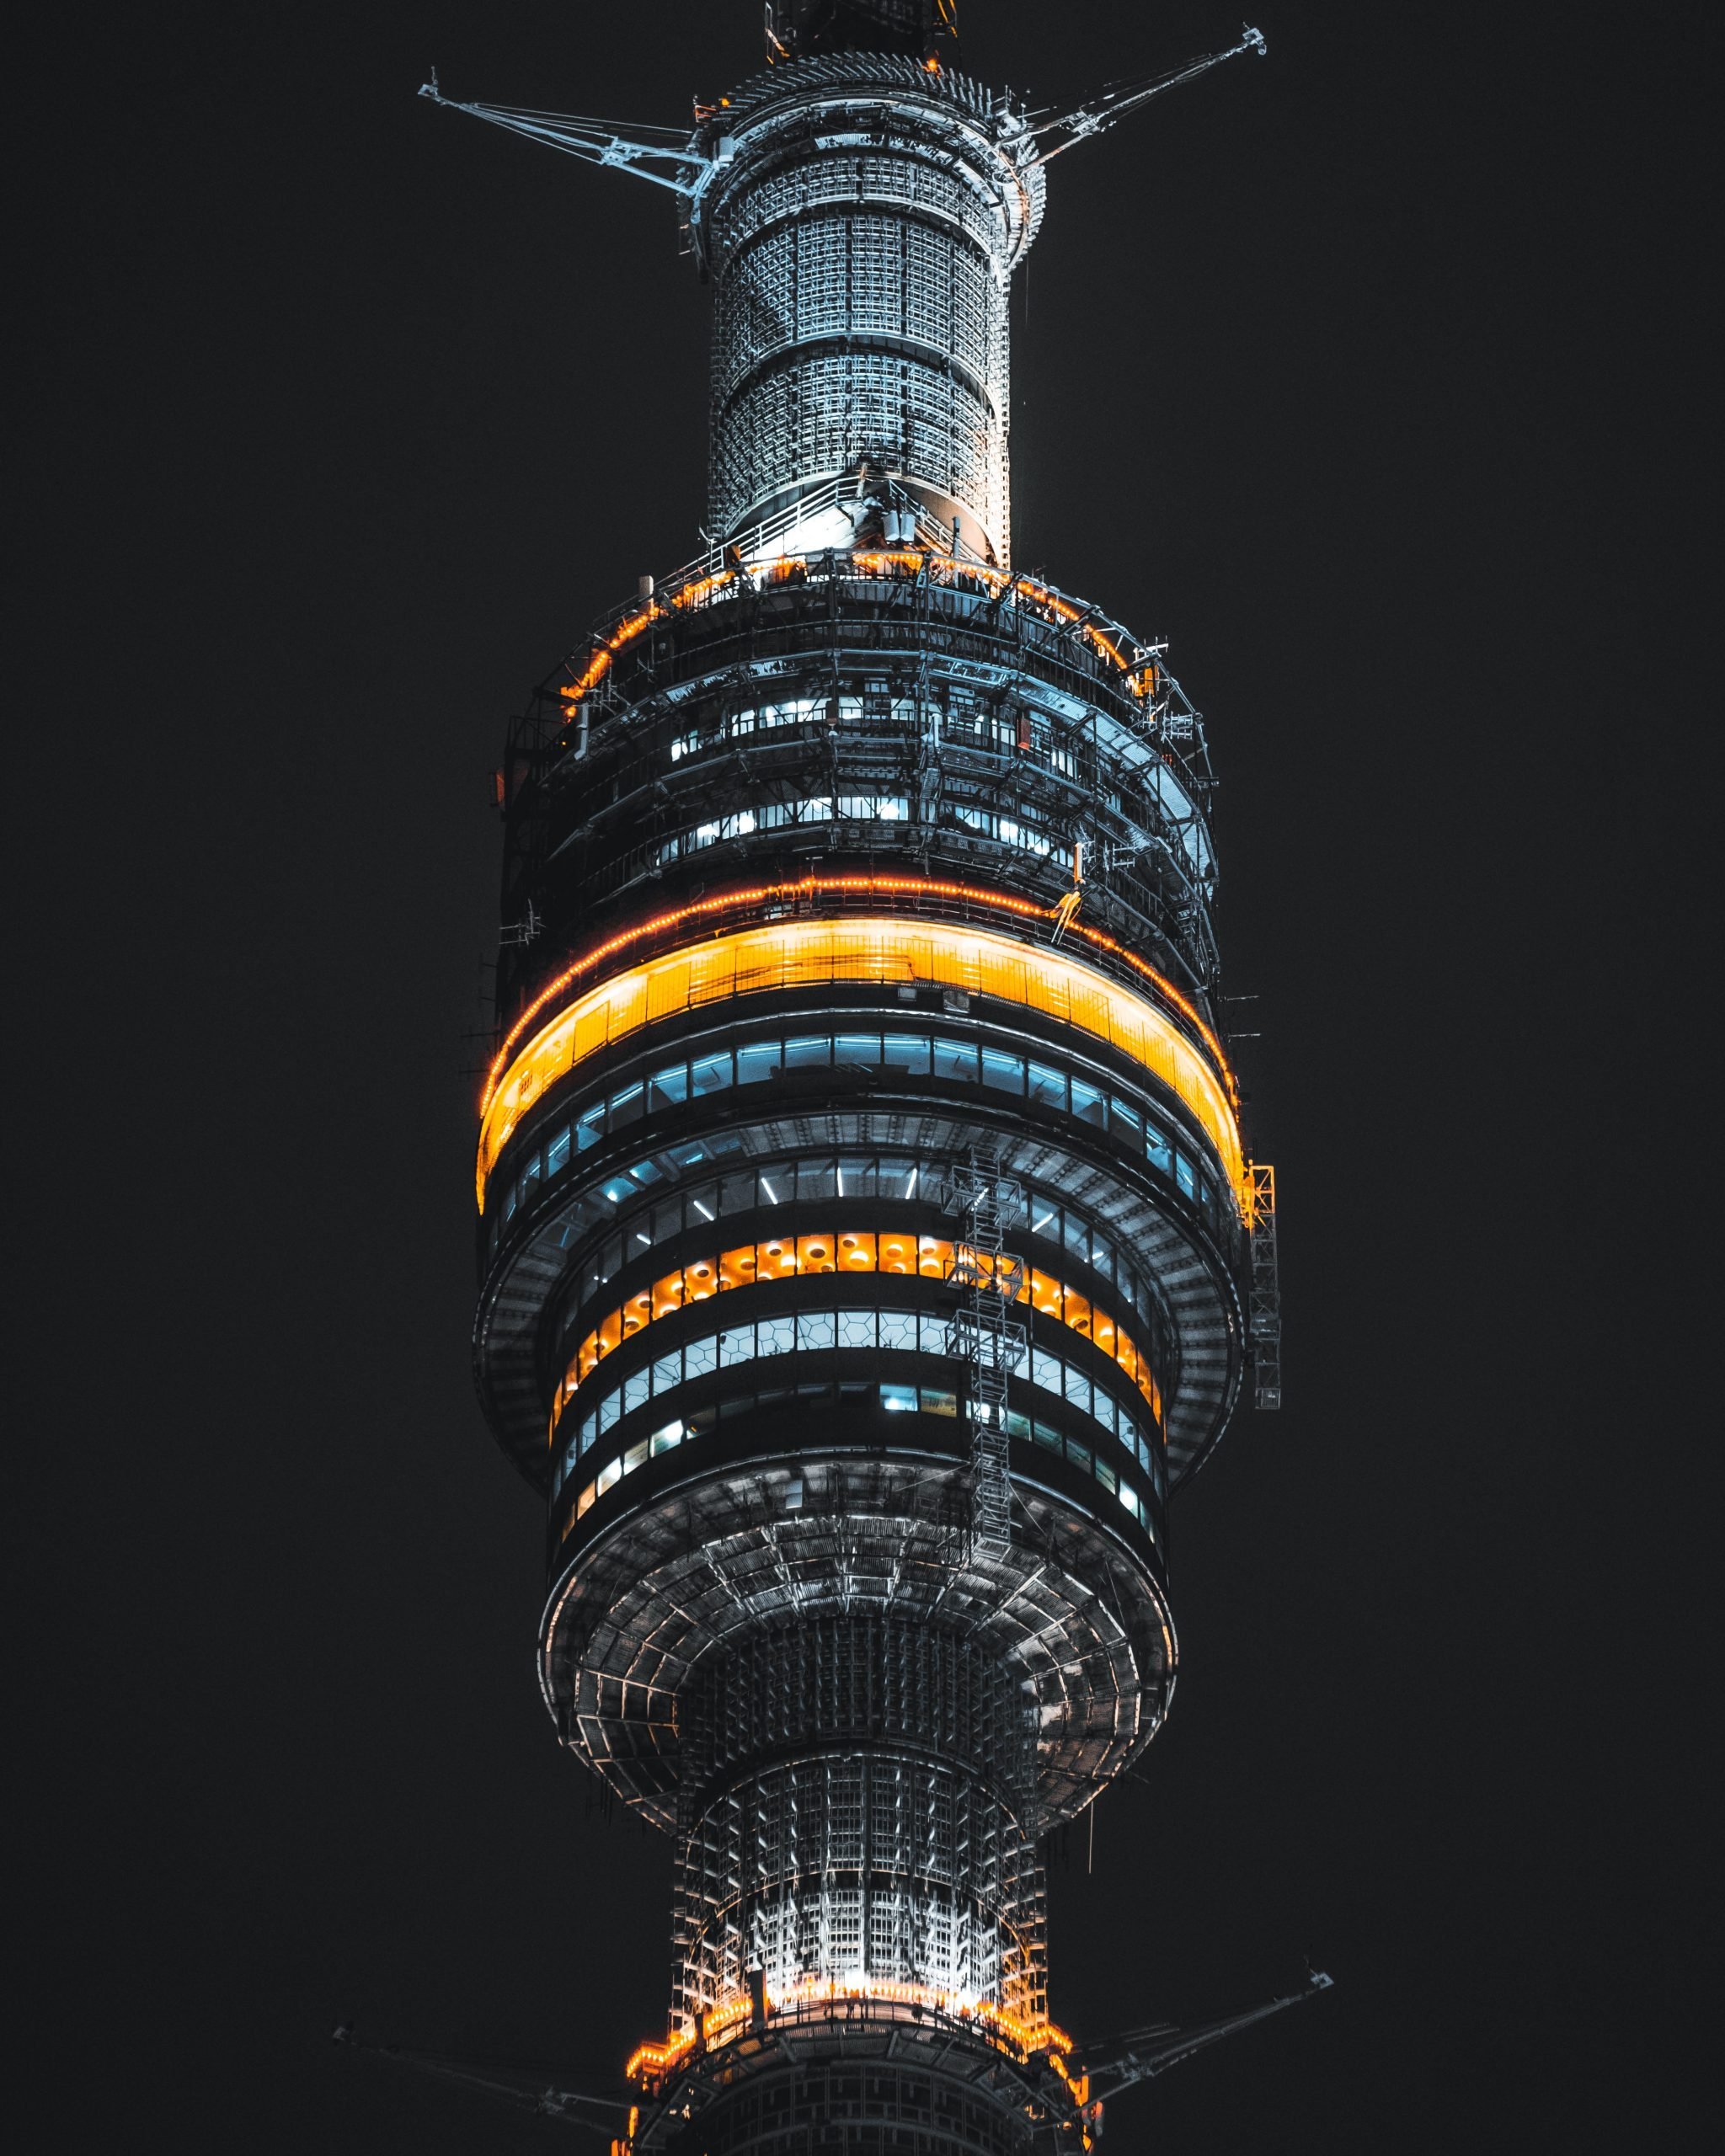 The Ostankino tower with the loghts in night